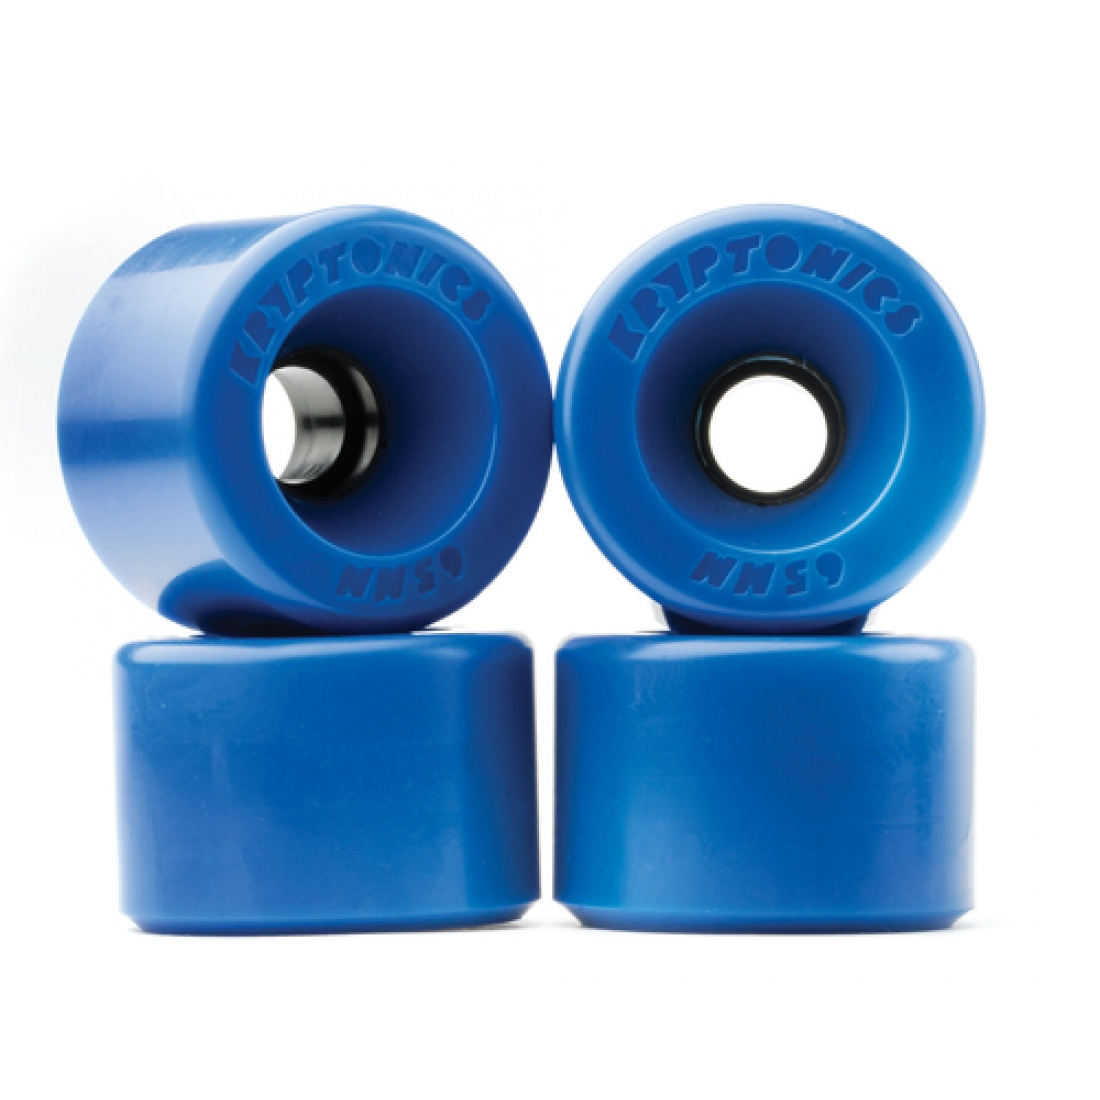 KRY-Star Trac Wheels Blue 65mm